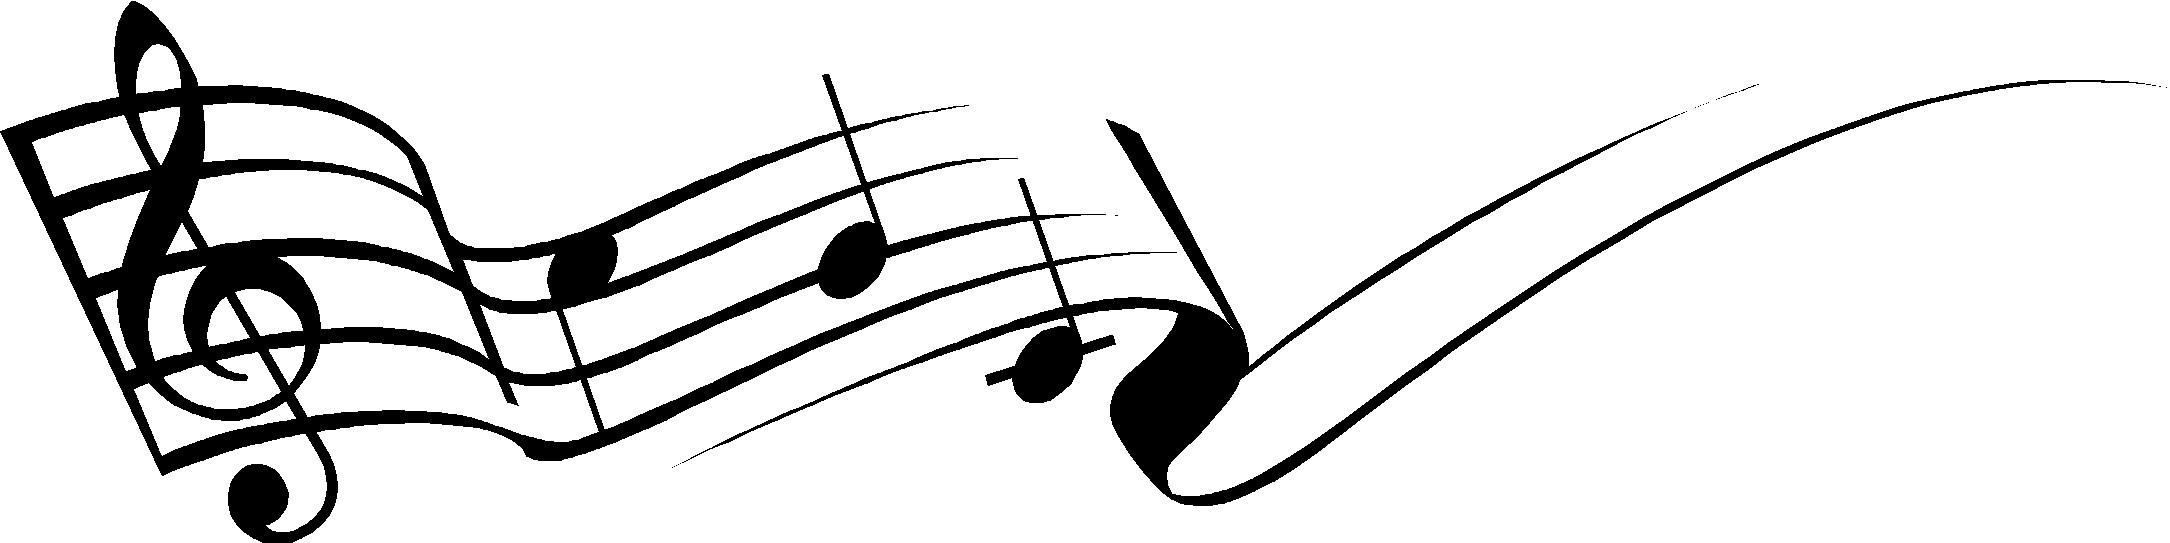 how to save music notes as pdf